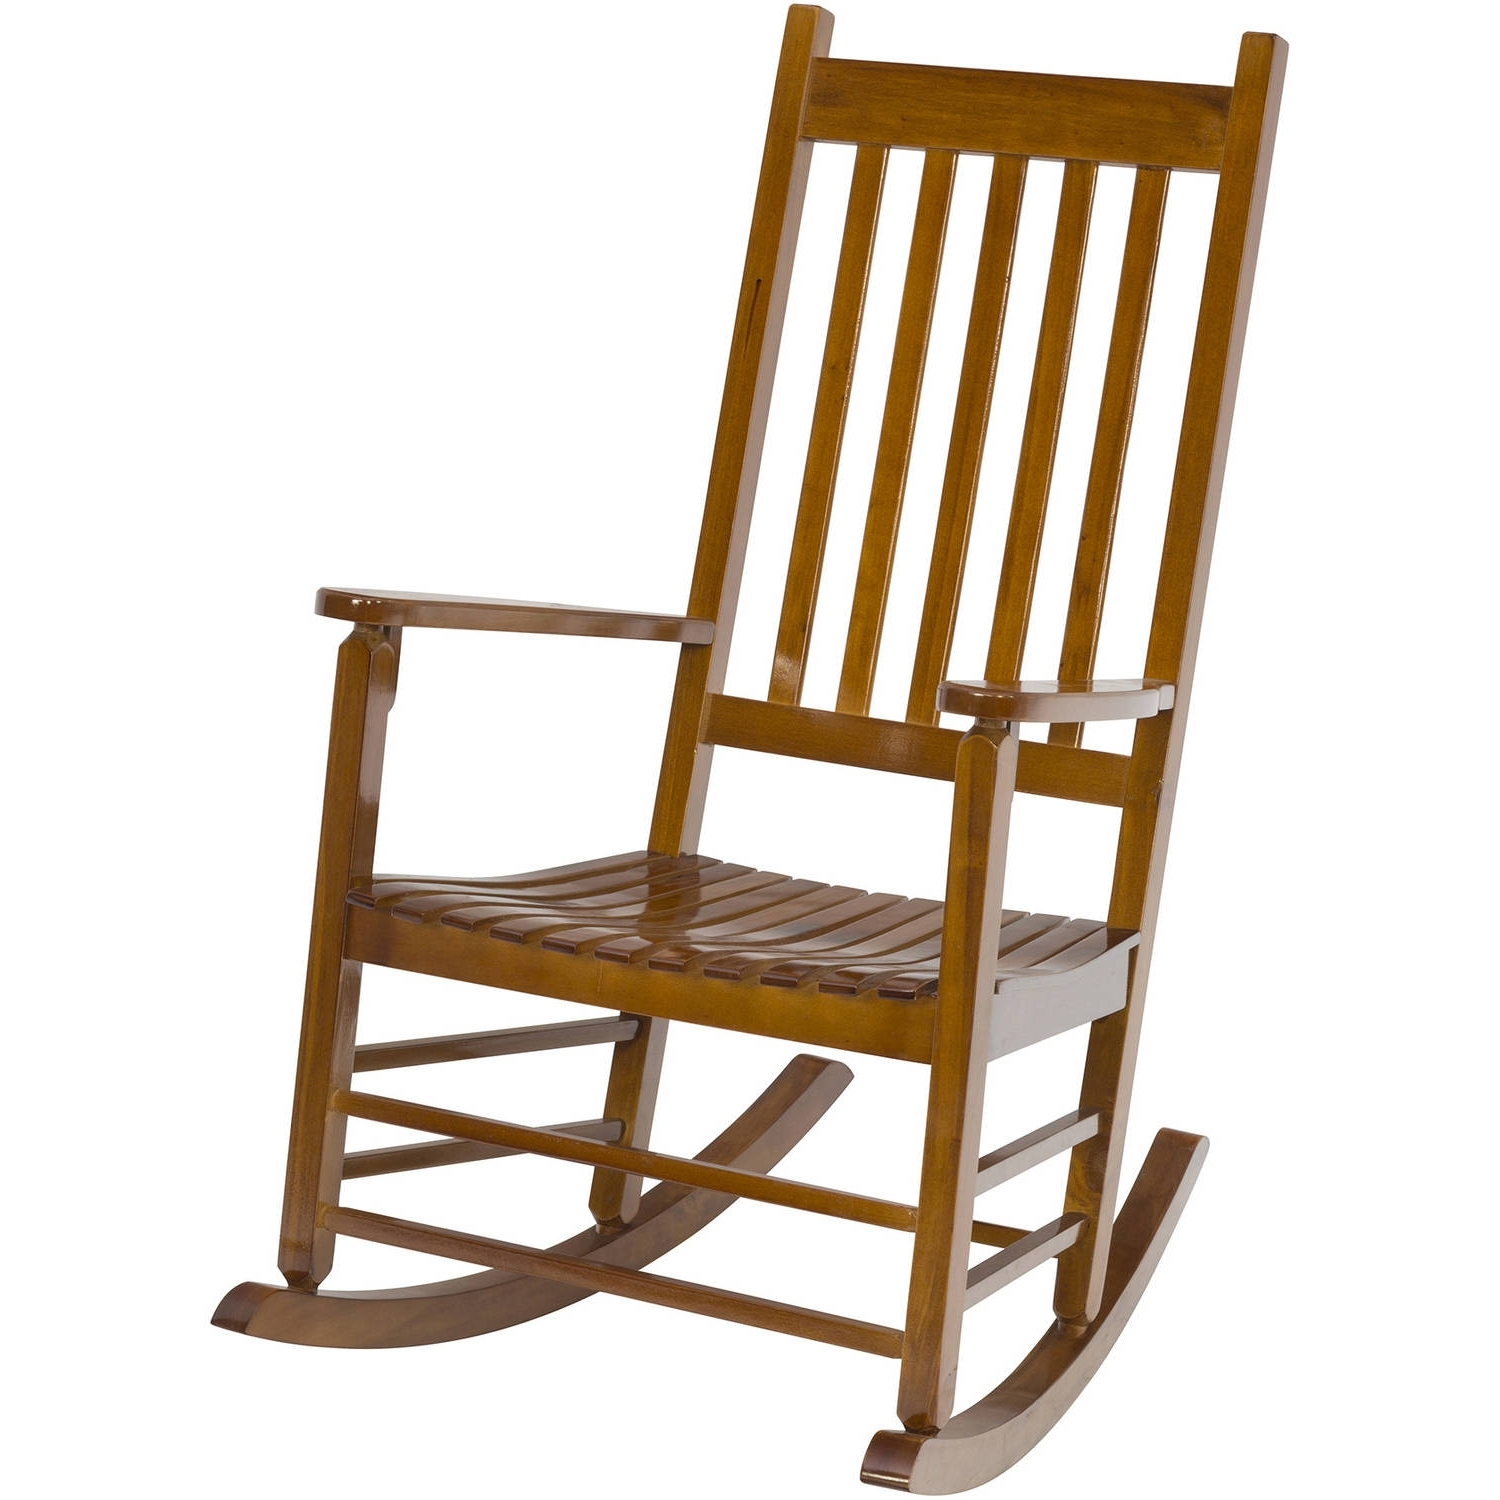 Home Design And Remodeling Ideas In Rocking Chairs At Target (View 4 of 20)